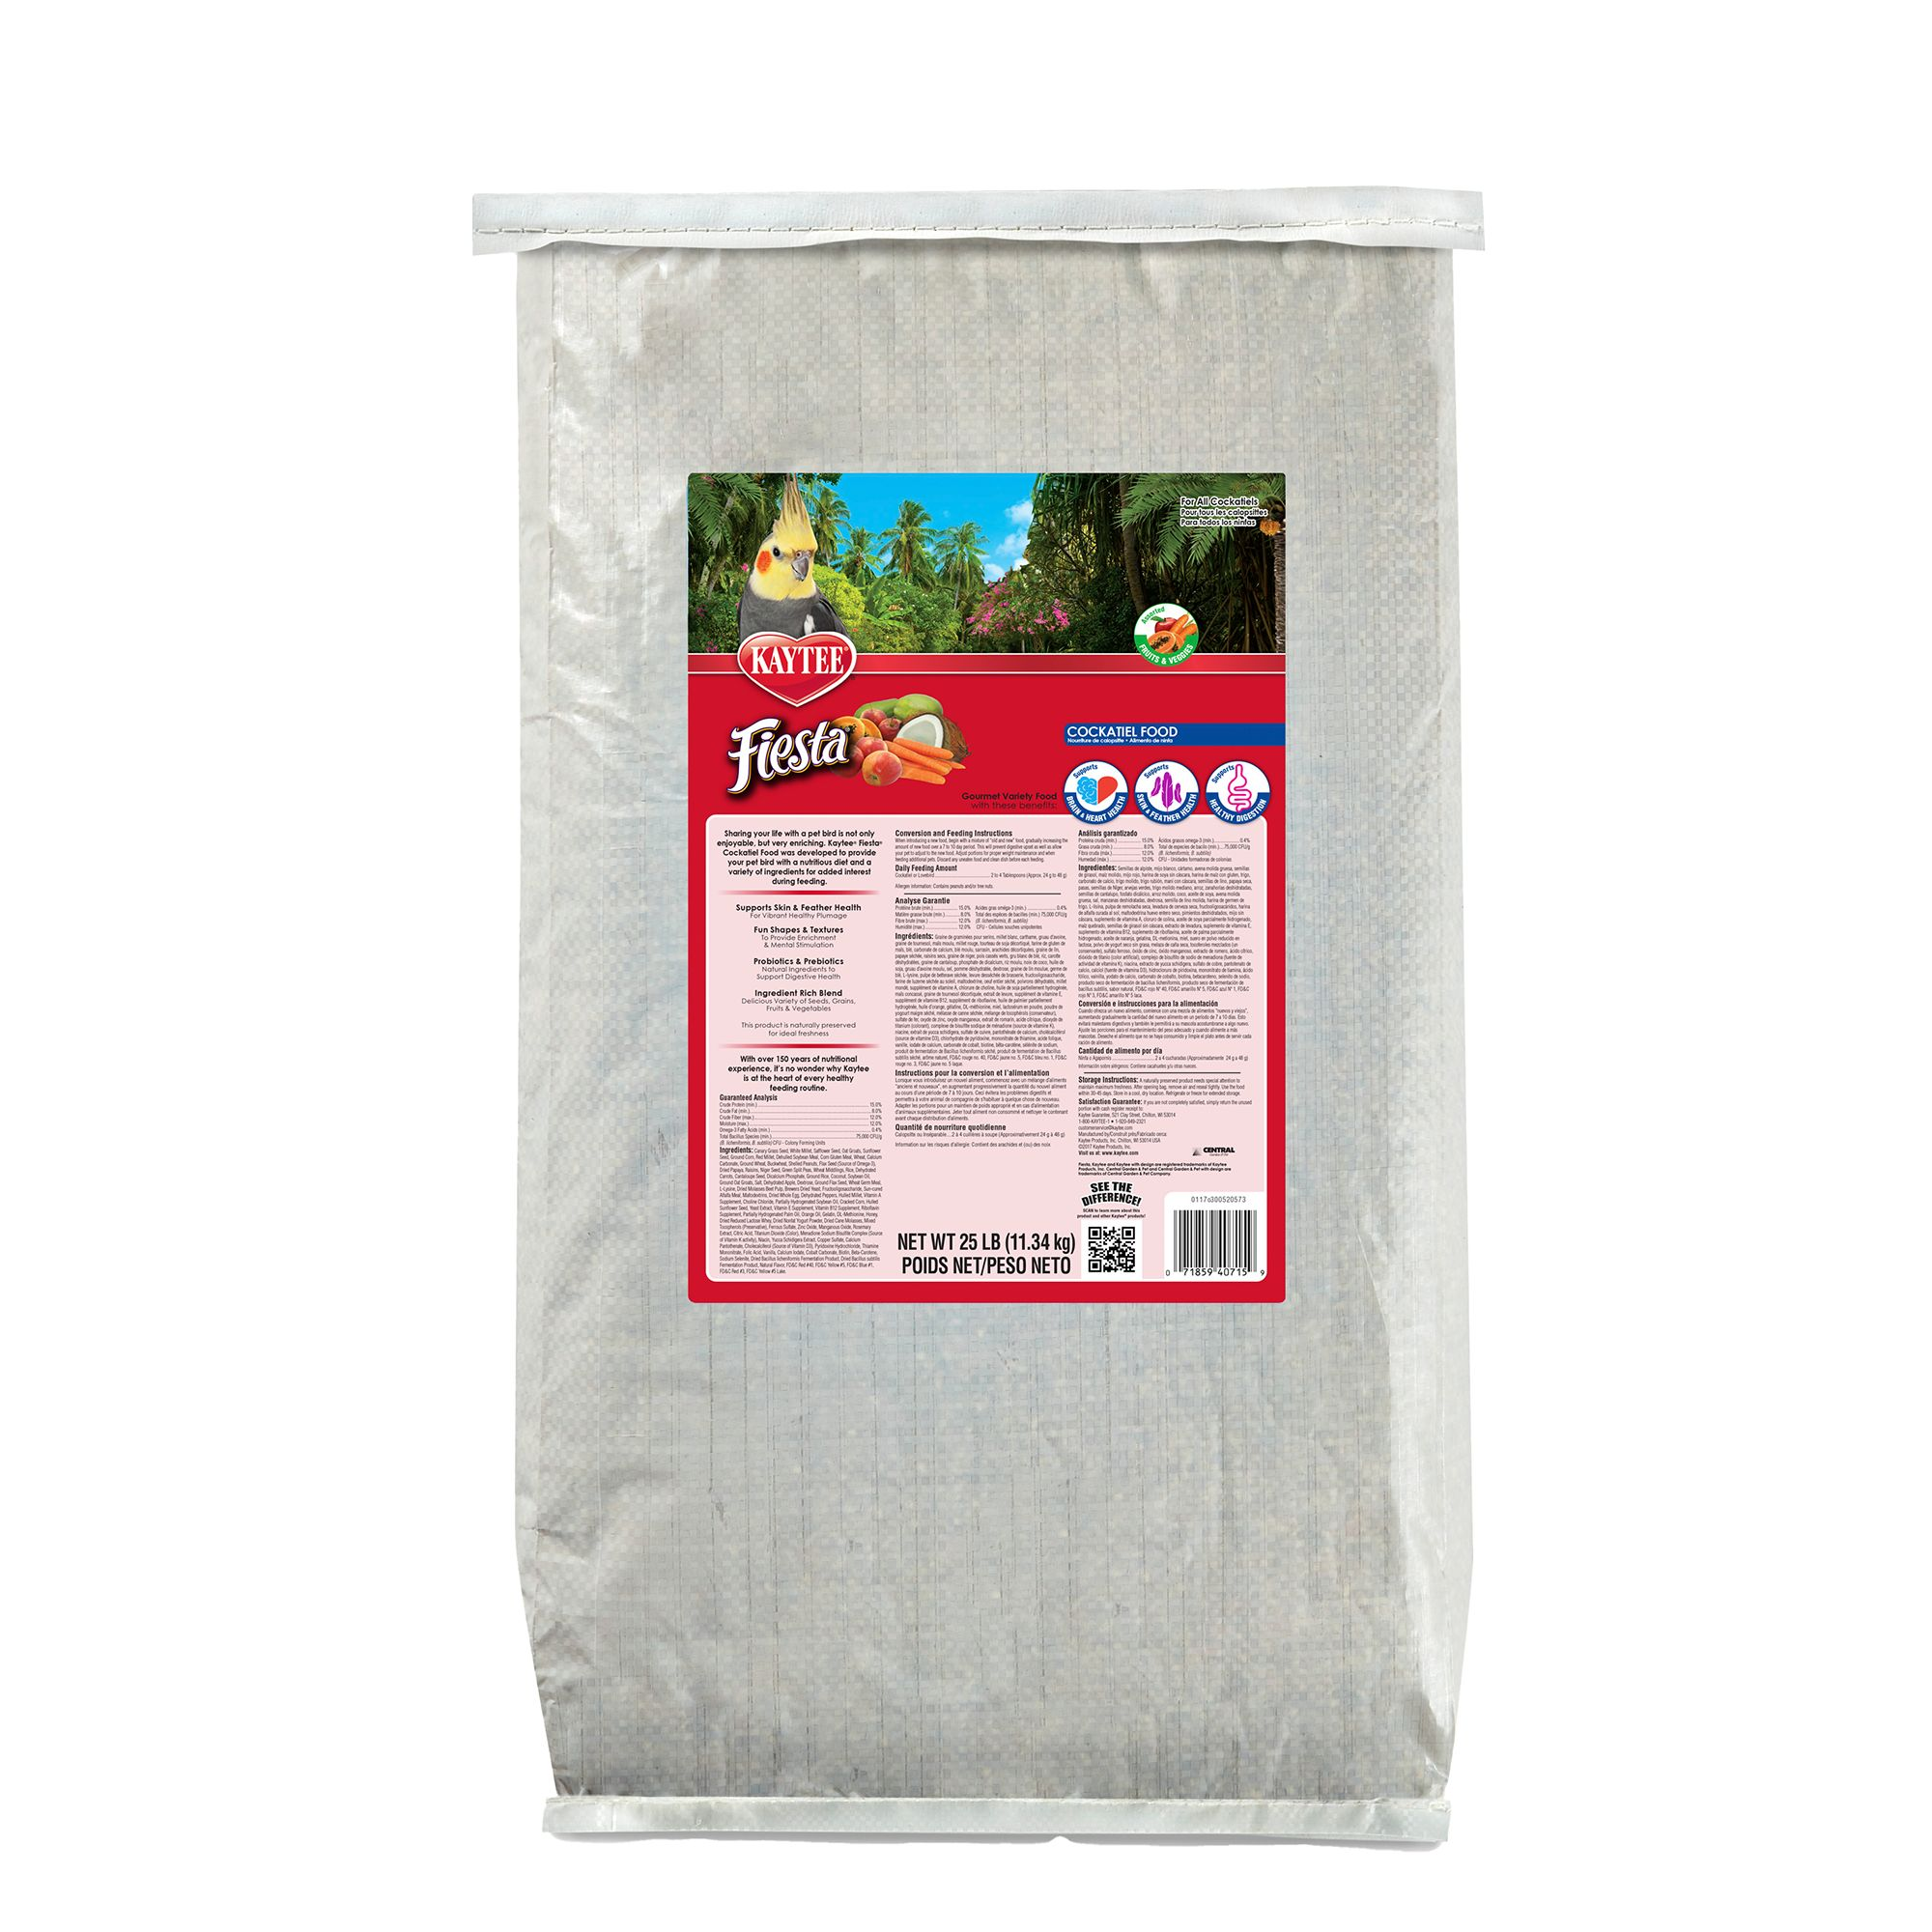 Kaytee Fiesta Cockatiel Food size: 25 Lb, Kibble, Seed, Fruits, Nuts, Adult, Canary Grass Seed 5271780